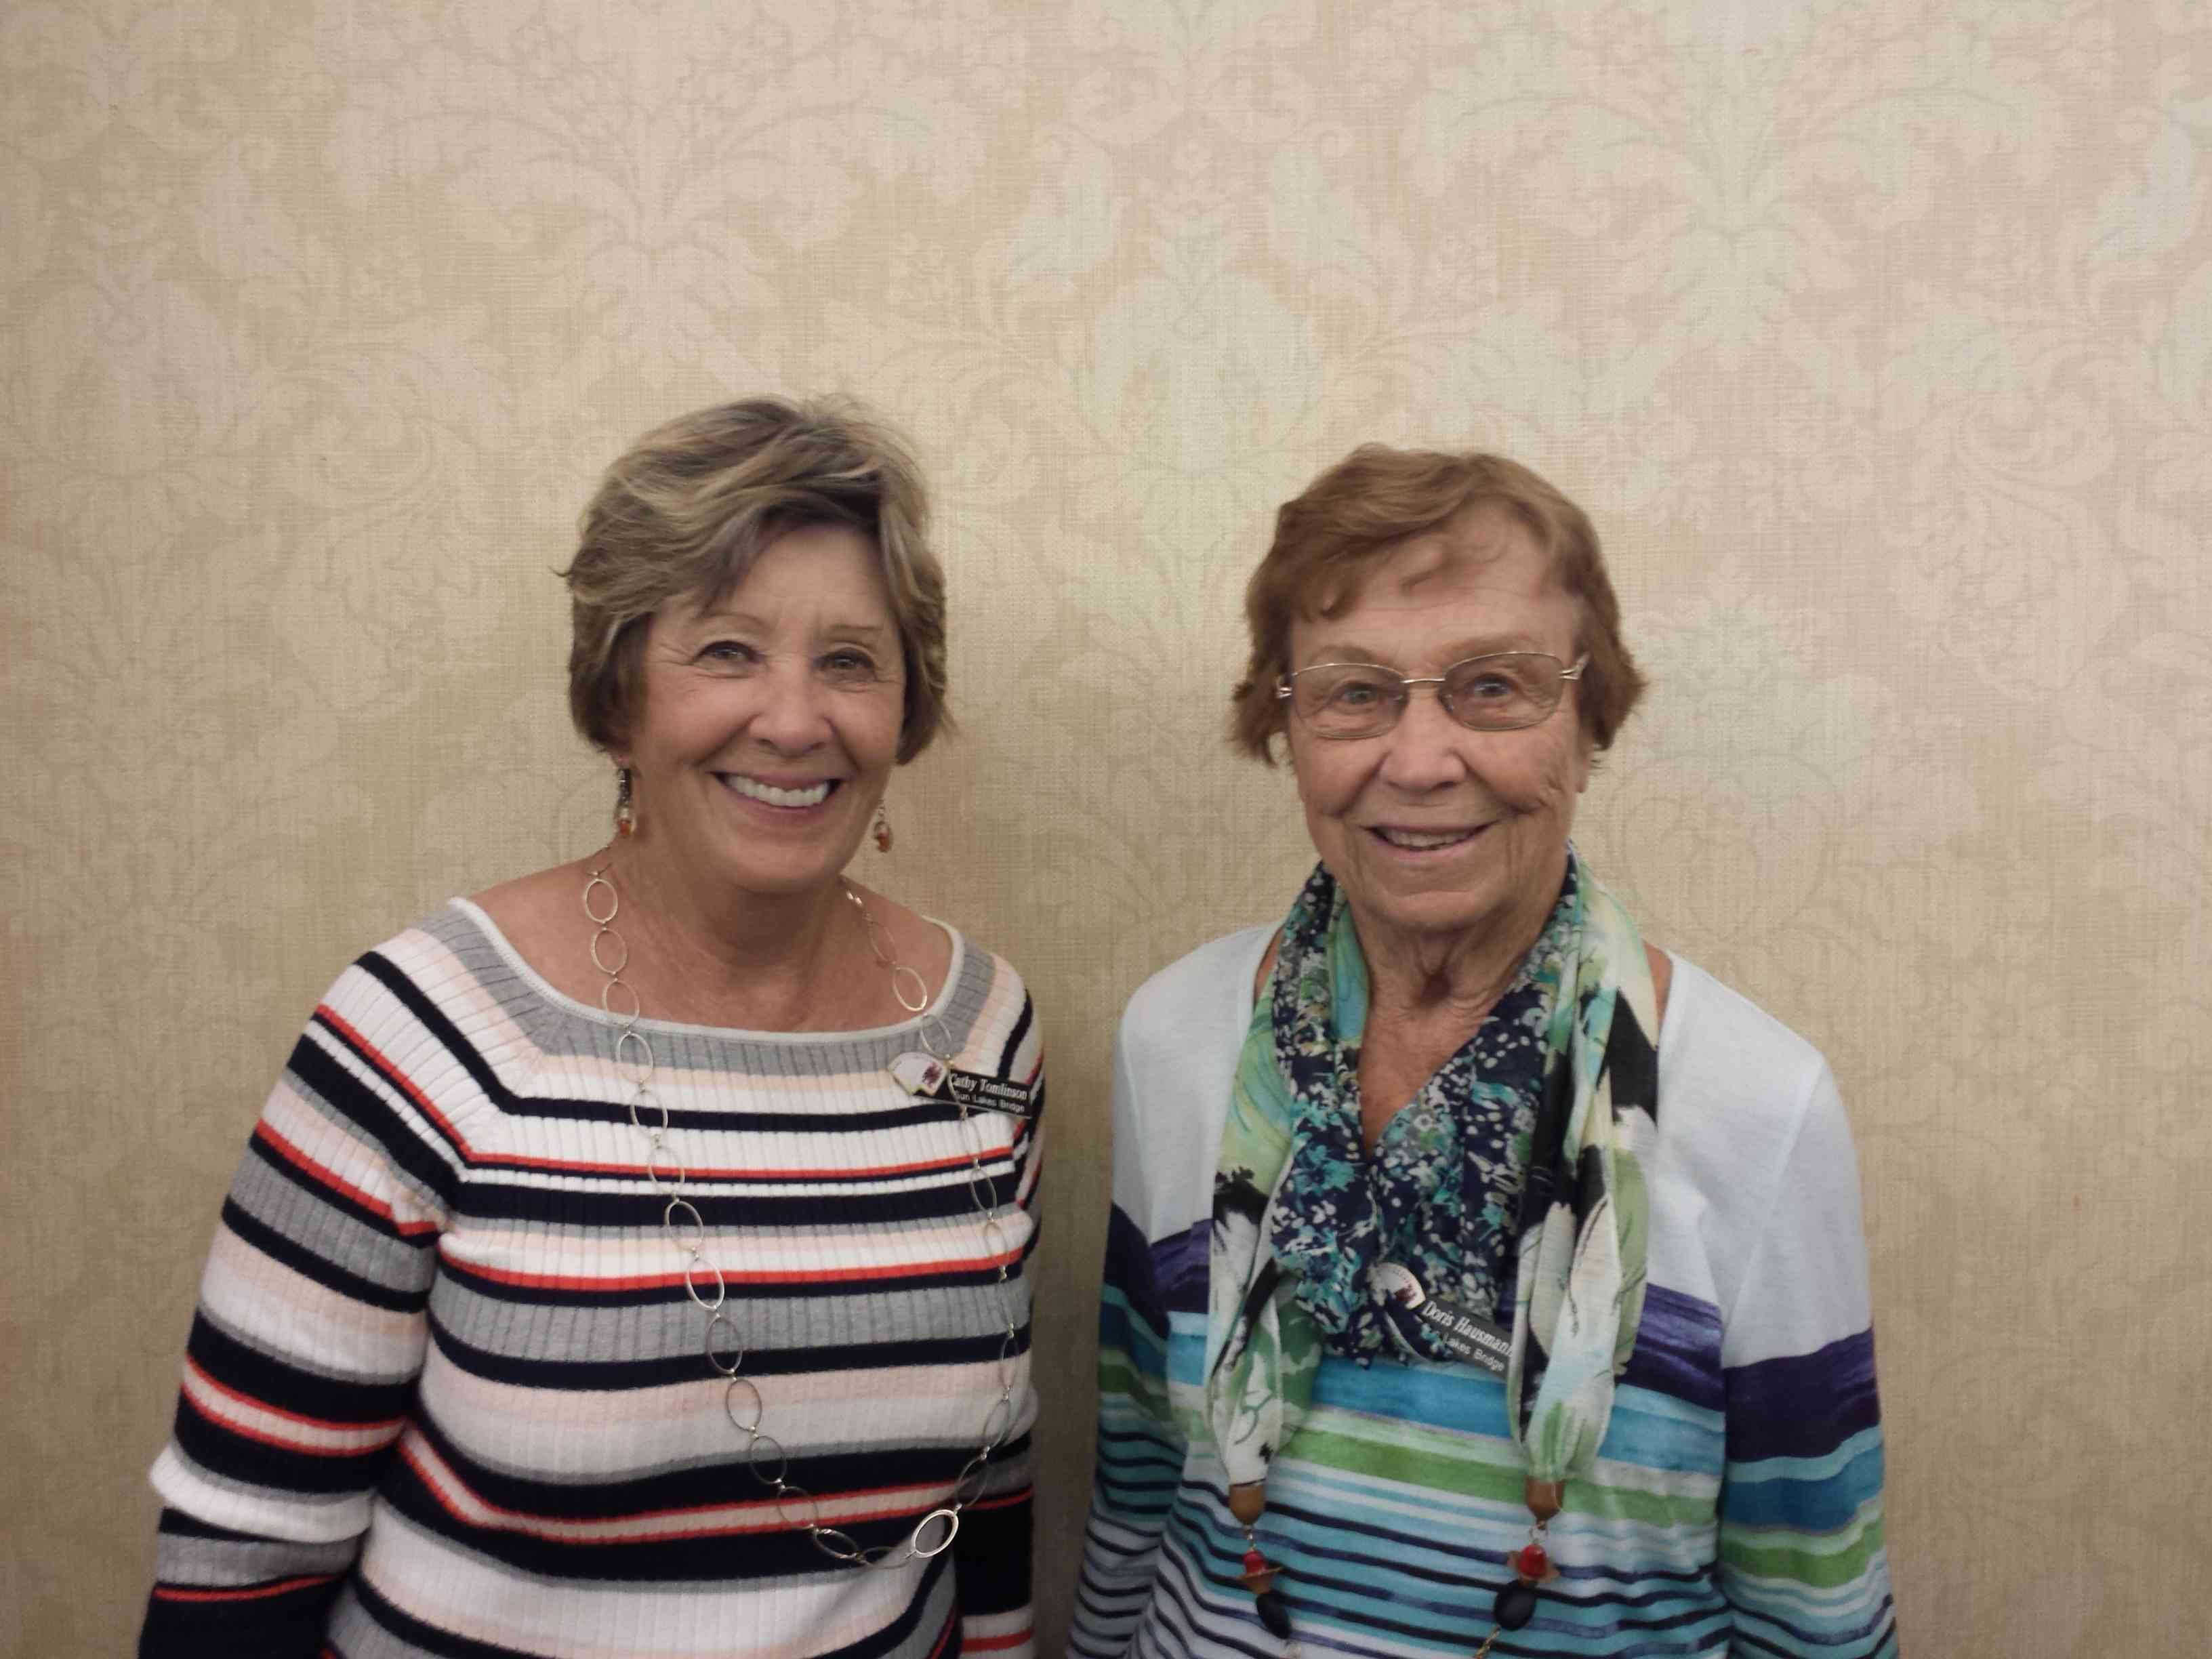 Tues AM Open pairs east west, L, Cathy Tomlinson and Doris Hausmann, SL, AZ